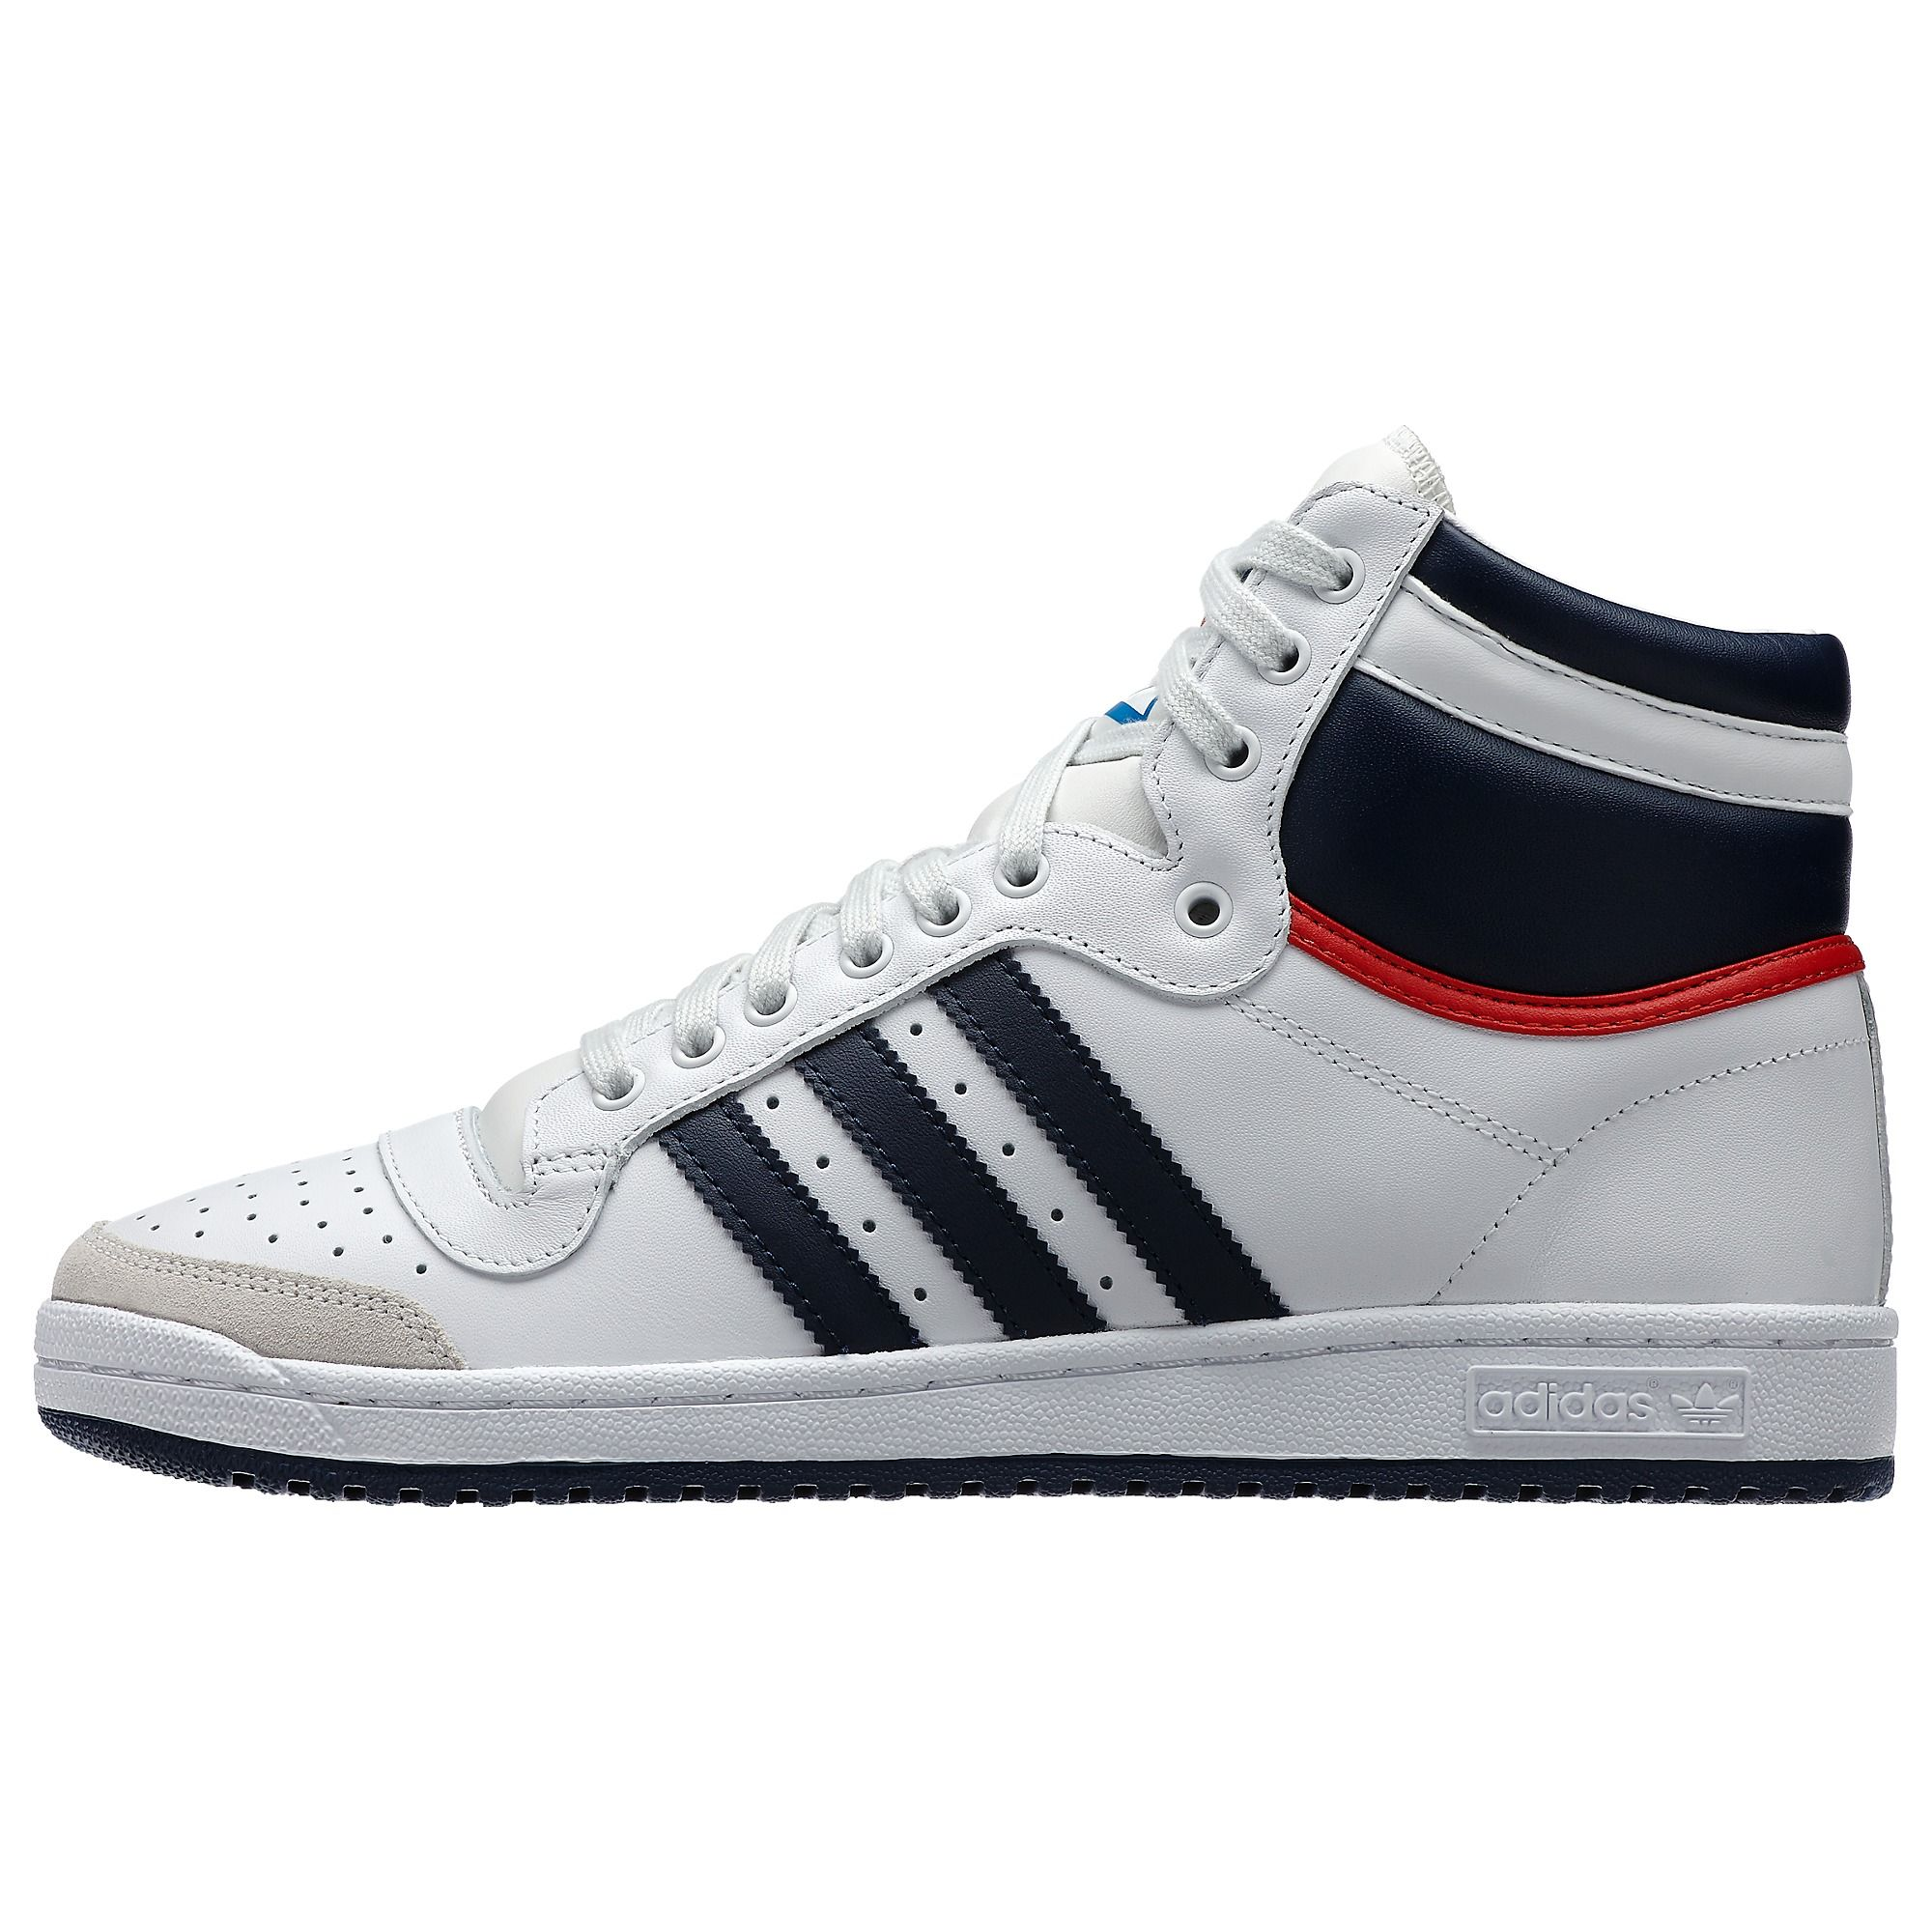 huge selection of f7631 21fce 35 years ago the adidas Top Ten shoes built a bridge between basketball and  the street. This legendary hi top sneaker features full grain leather  upper, ...